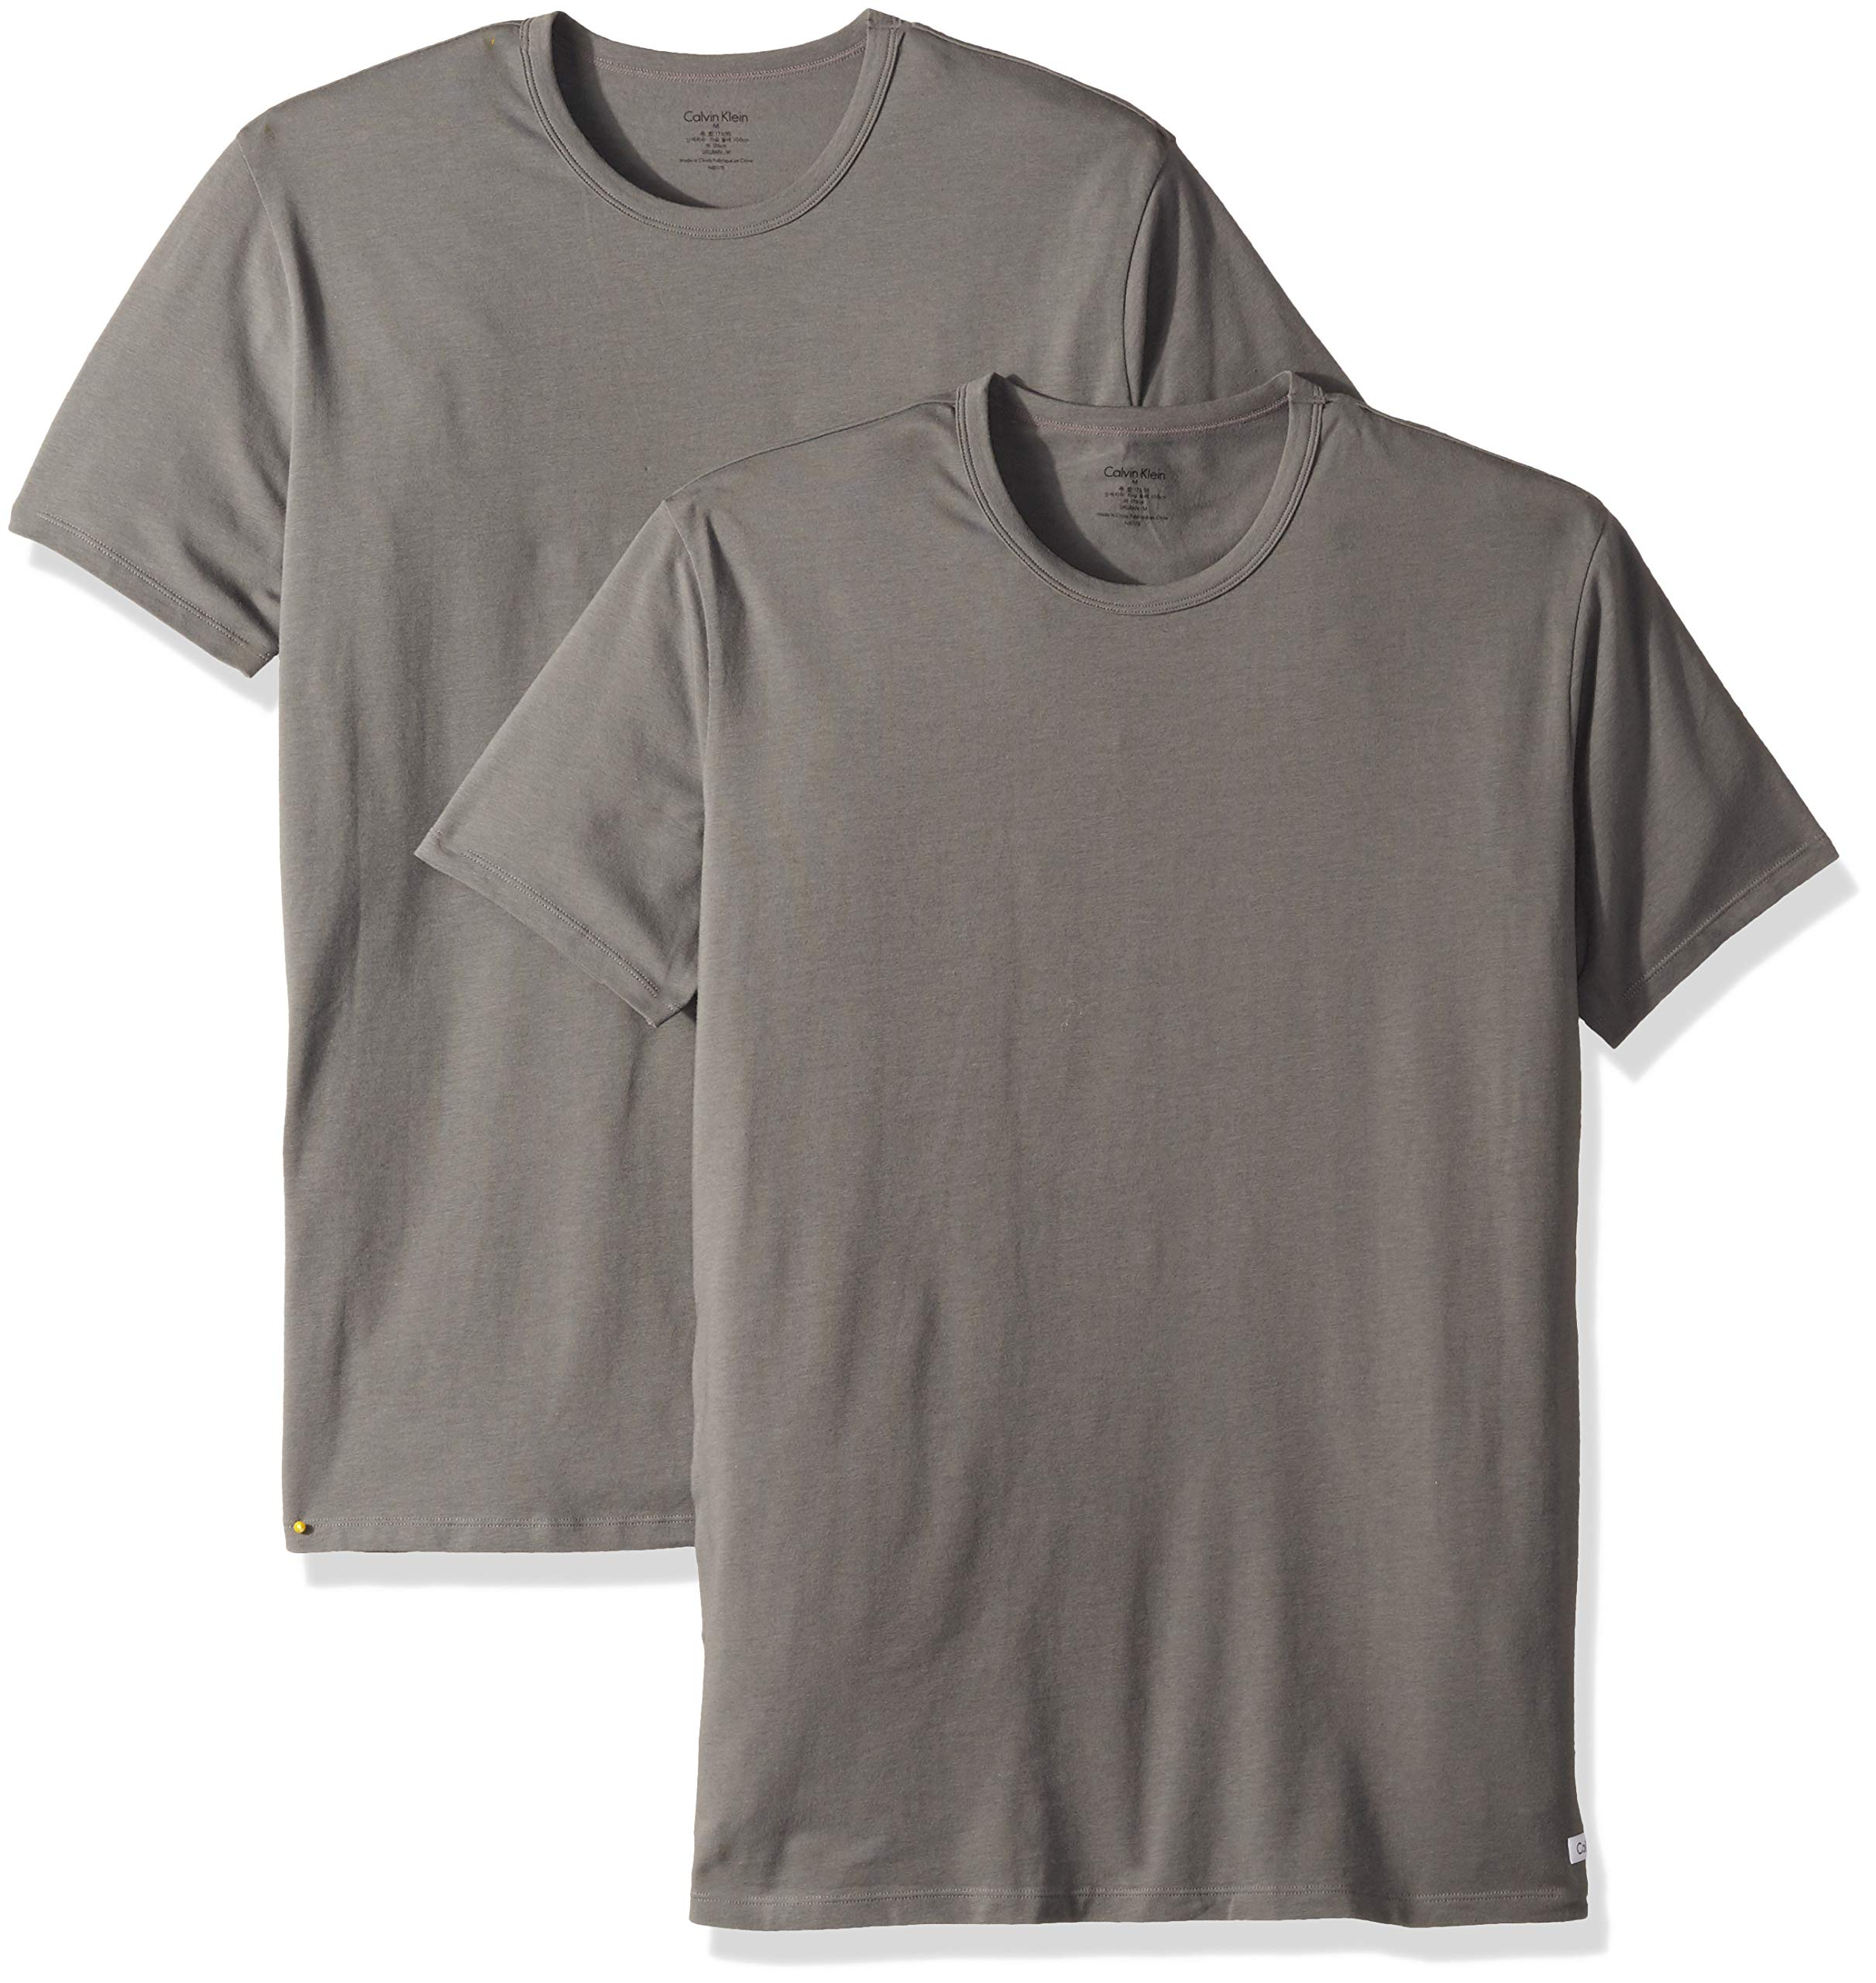 Calvin Klein Men's Cotton Stretch Multipack Crew Neck T-Shirts, Grey Sky, M by Calvin Klein